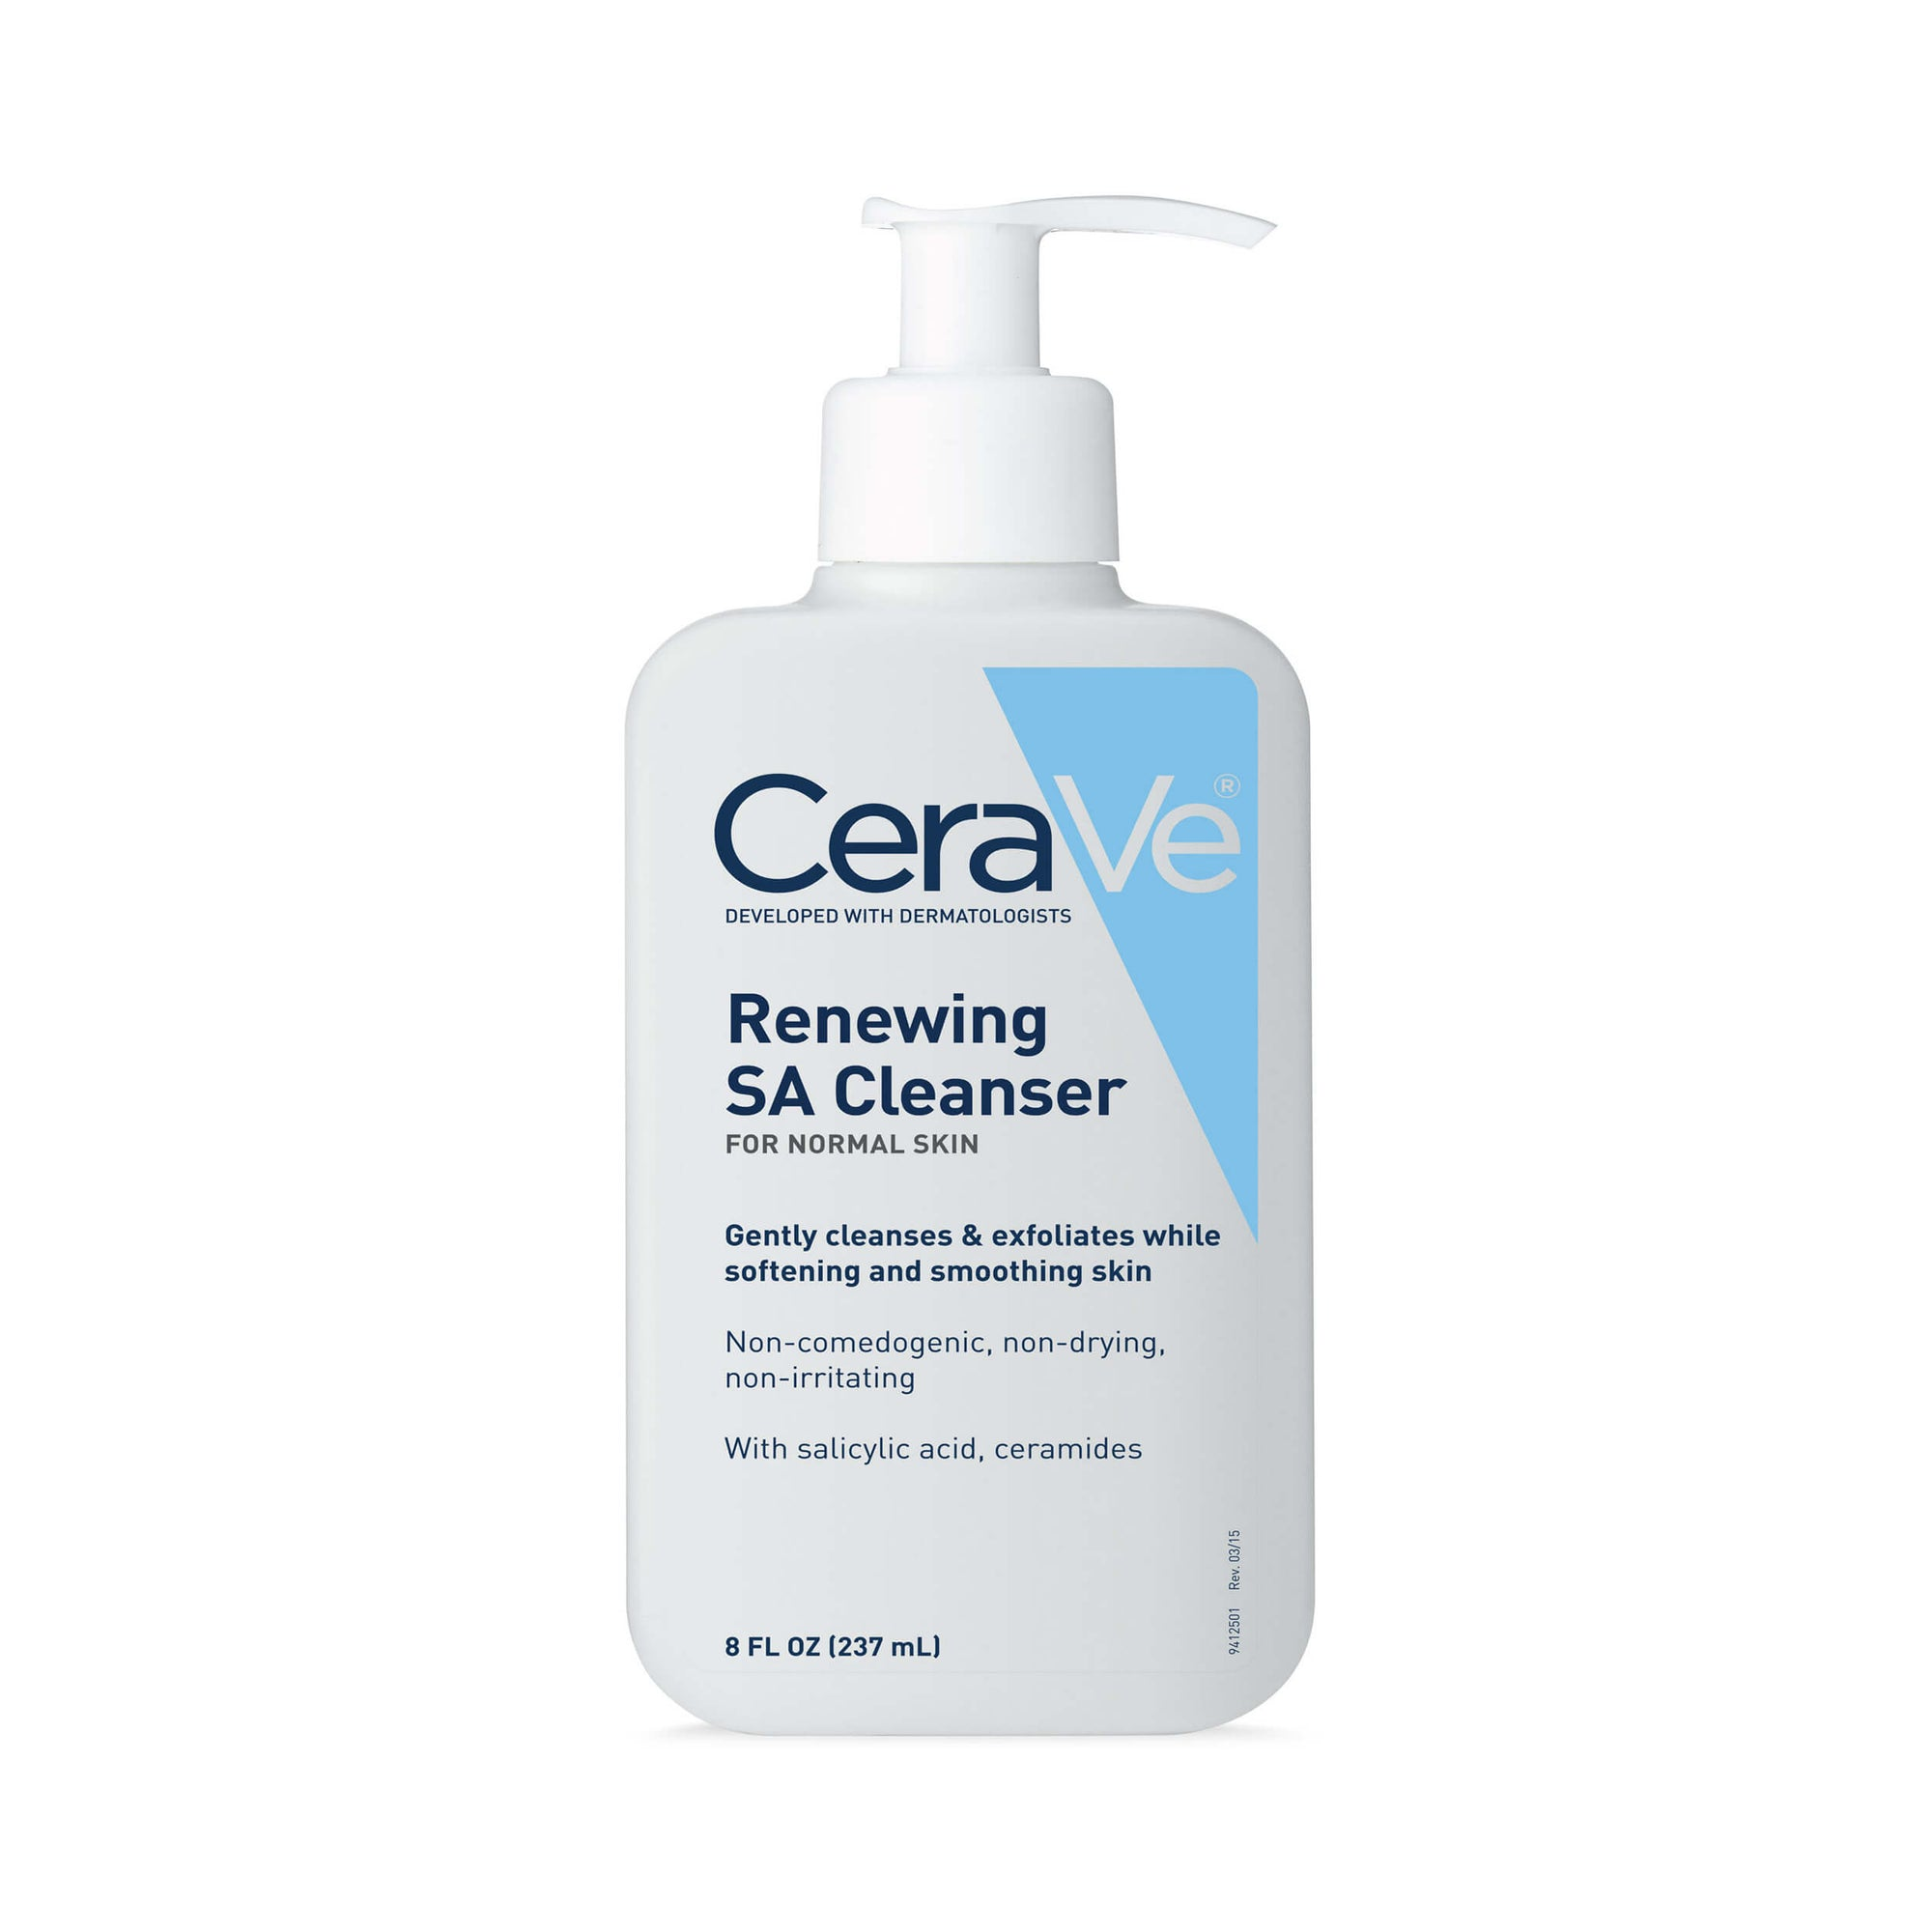 CeraVe Renewing SA Cleanser for Rough and Bumpy Skin 237ml